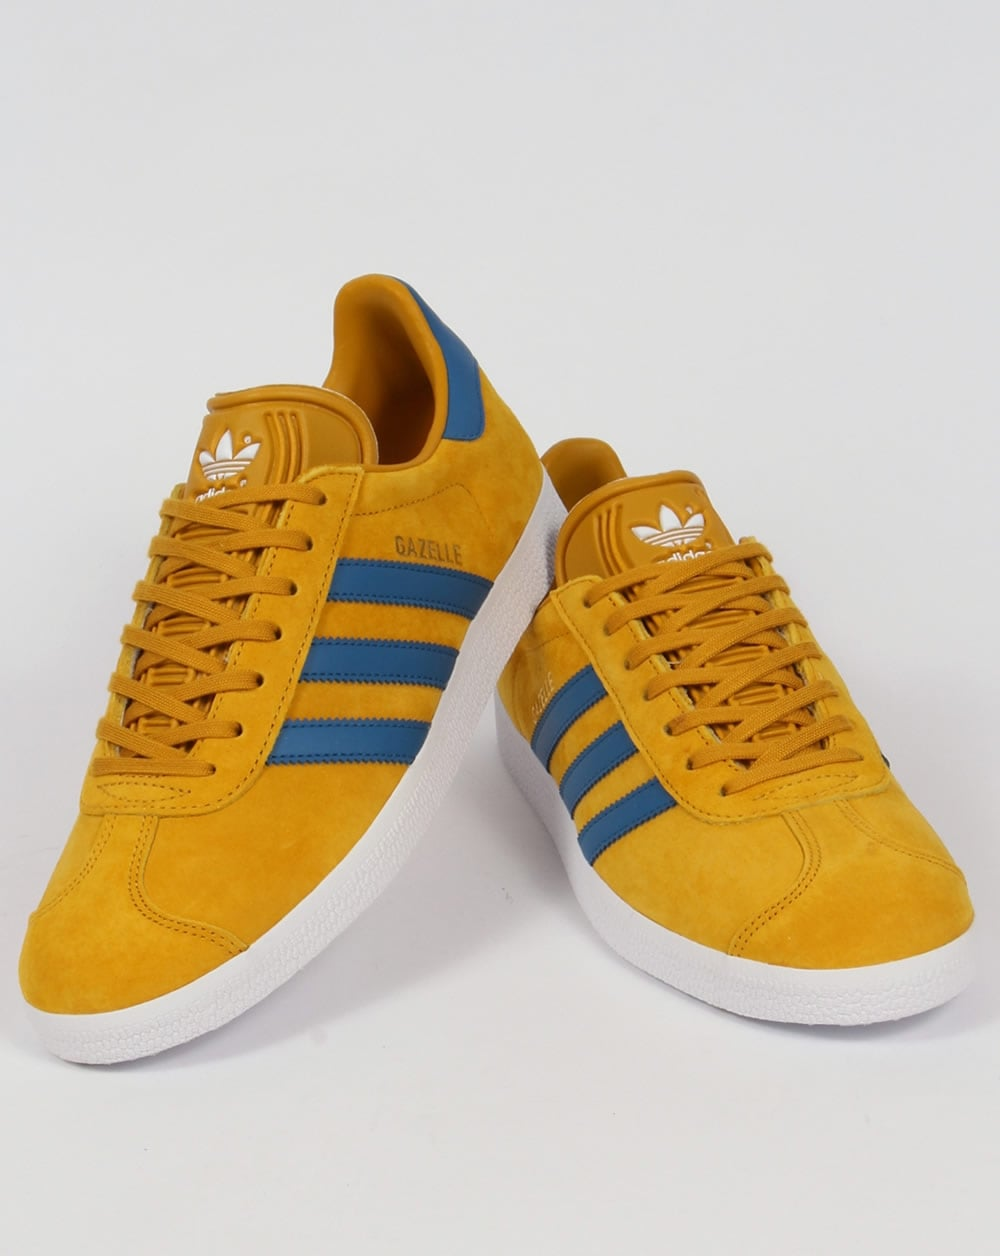 Adidas Gazelle Trainers Golden Yellow/Blue